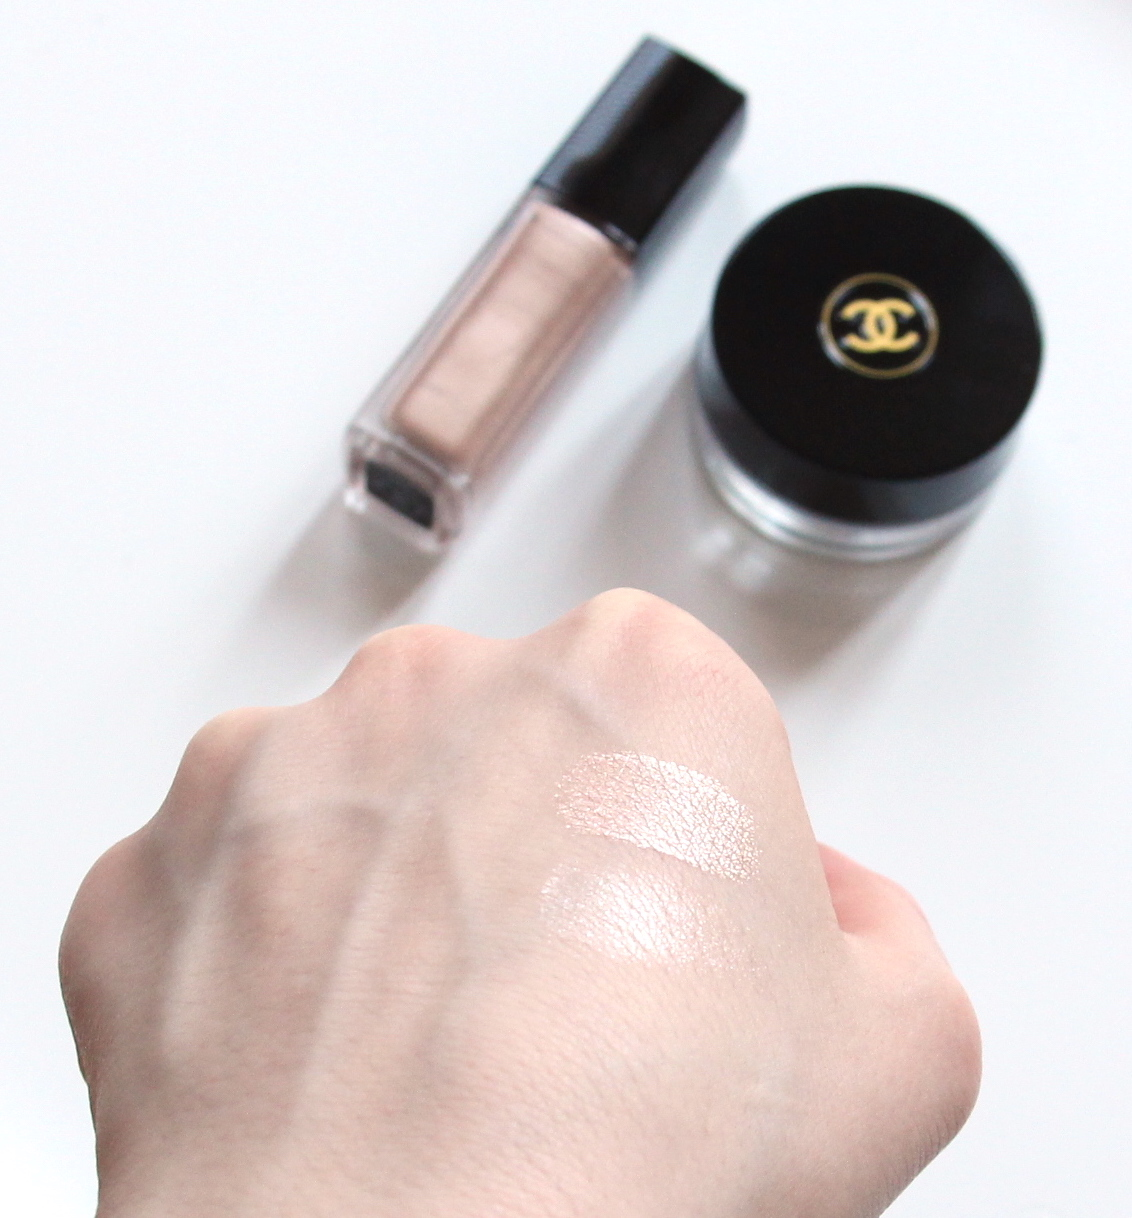 Chanel OMBRE PREMIÈRE LAQUE Liquid Eyeshadow shade 22 - Rayon, Eye Gloss 2019